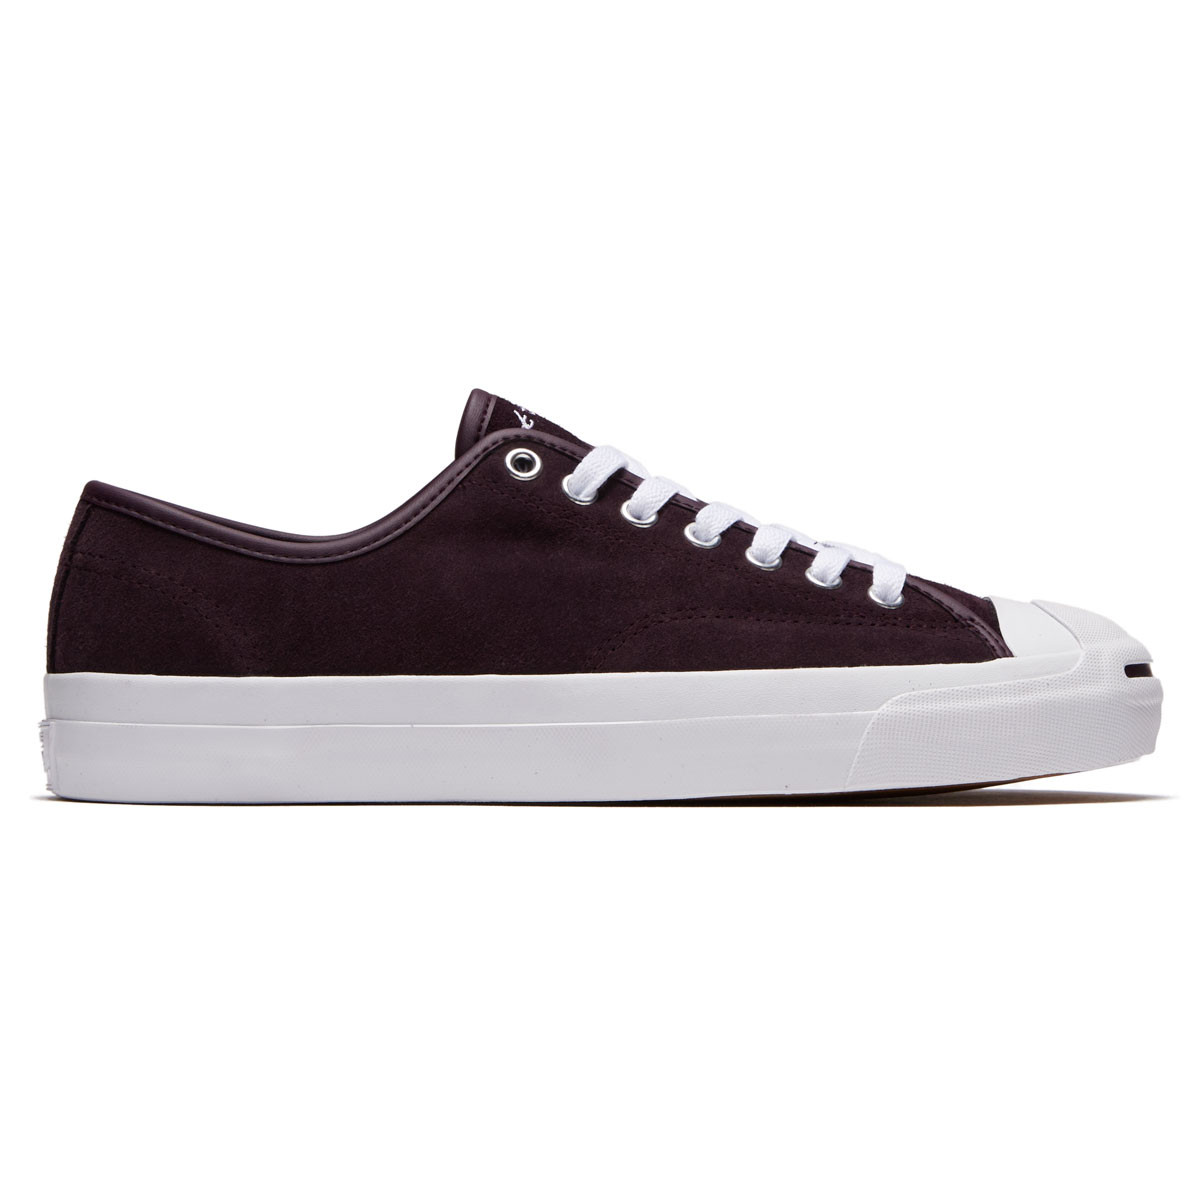 adcf87cb33e5 Converse Jack Purcell Pro Ox Shoes